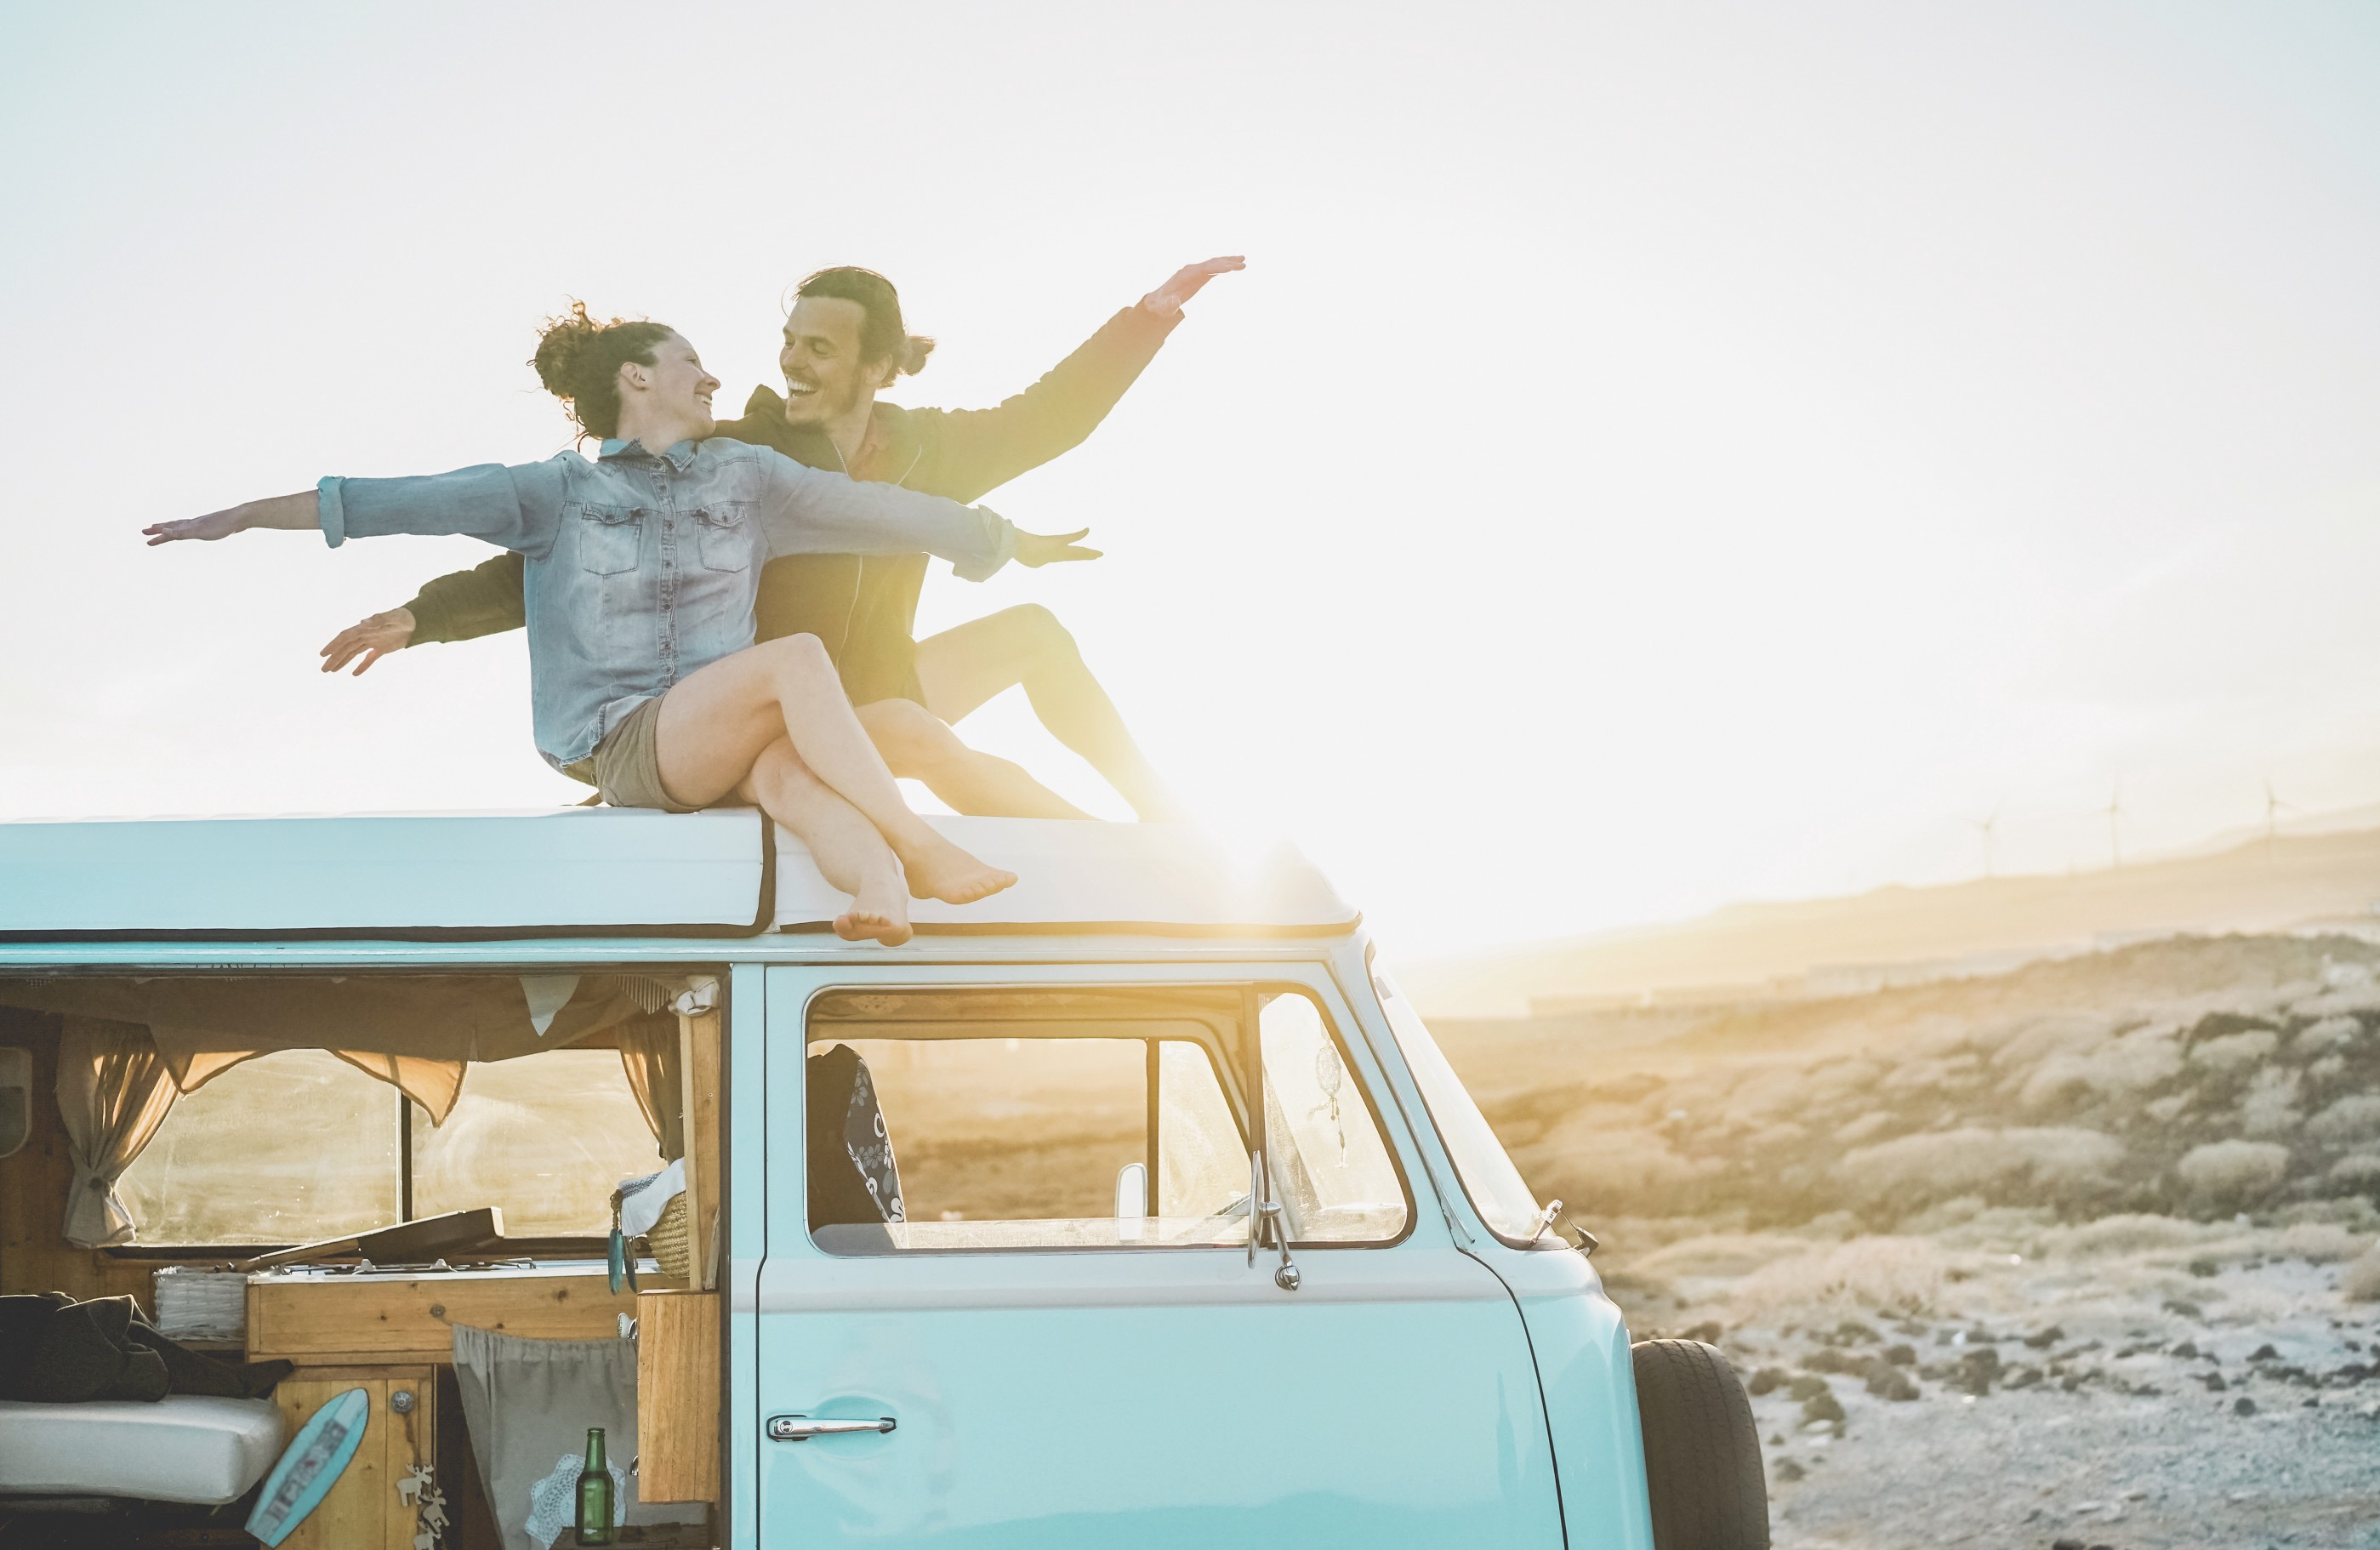 A silly couple sits on top of their van at sunset with their arms spread wide.